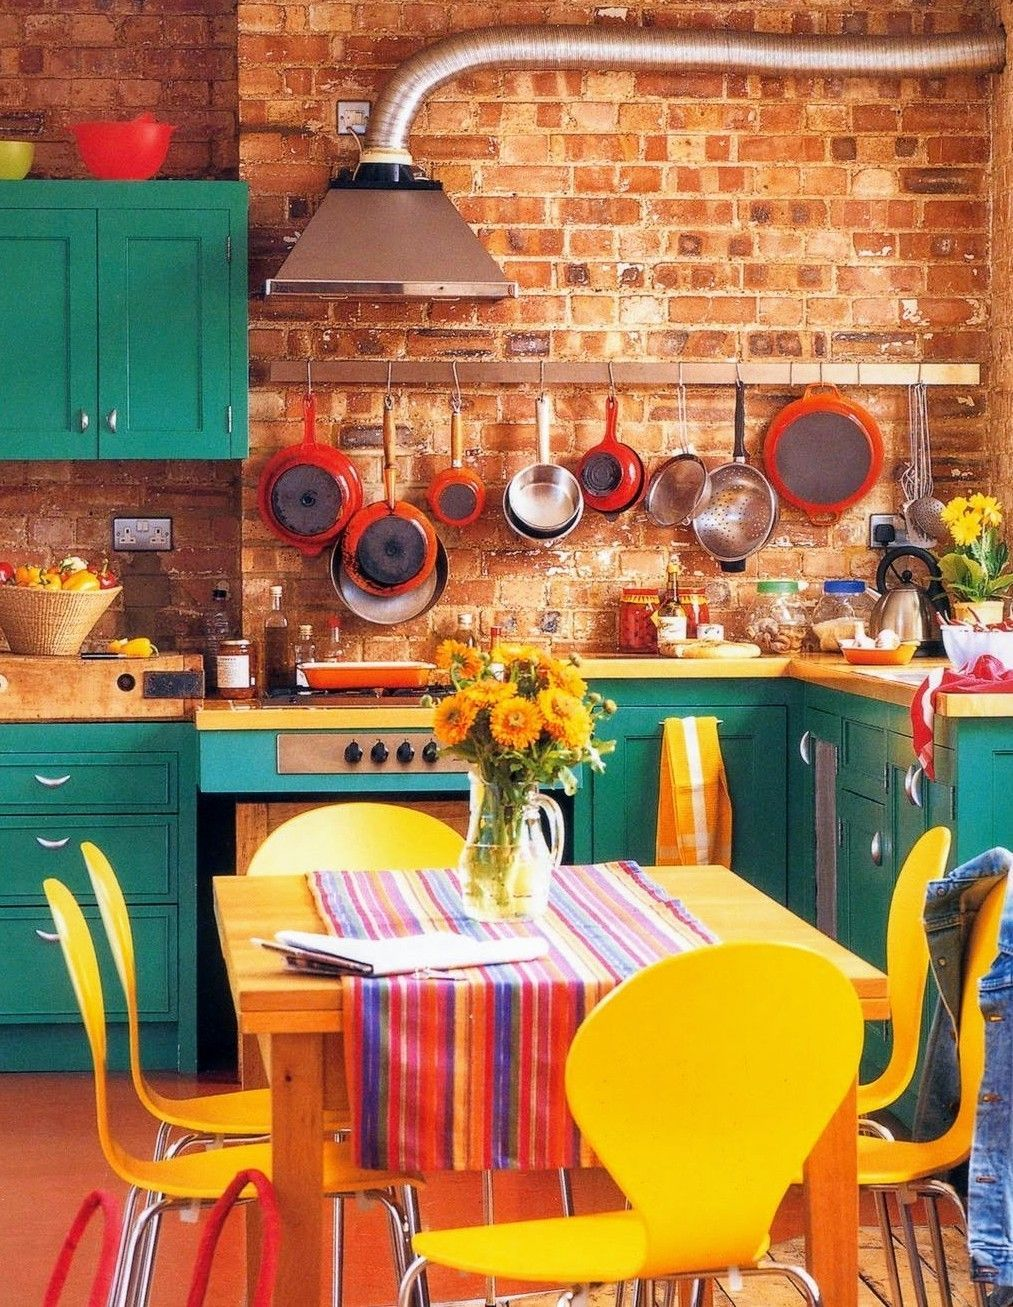 Teal kitchen cabinets and bright yellow accents  Interior design